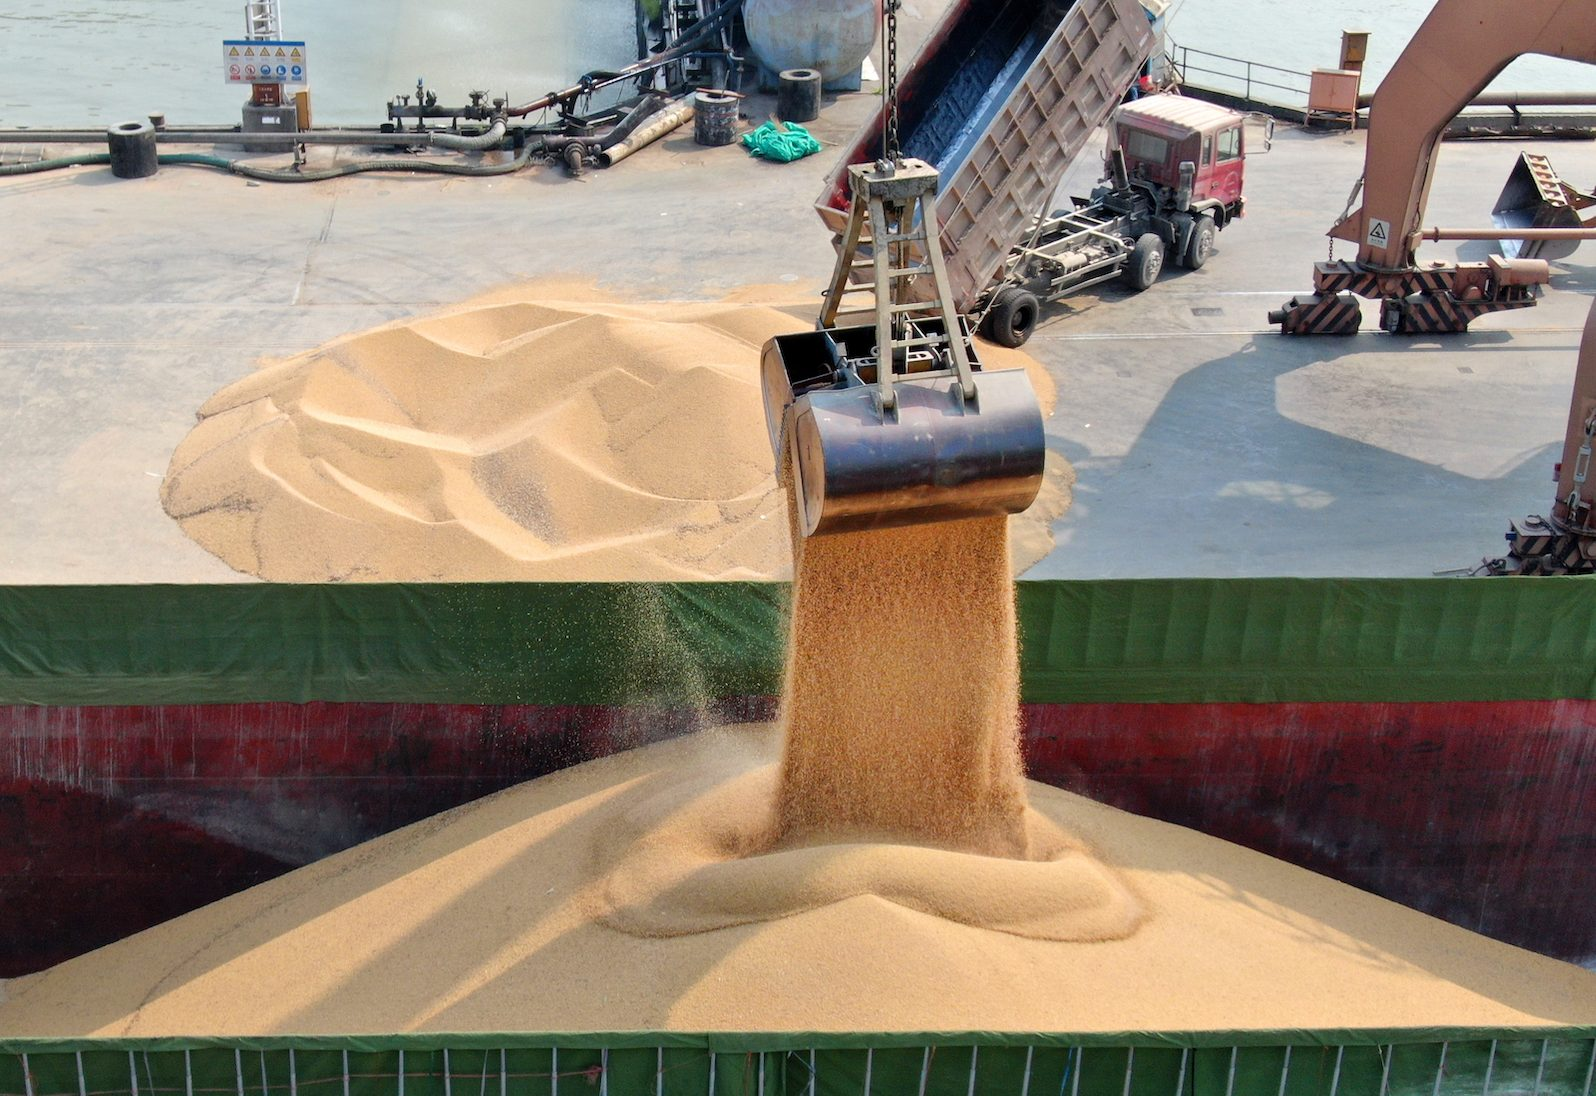 Soybeans from Ukraine are unloaded at the port in Nantong, in eastern China. Imports of soy used to come from the US, but have slumped since the trade war began.